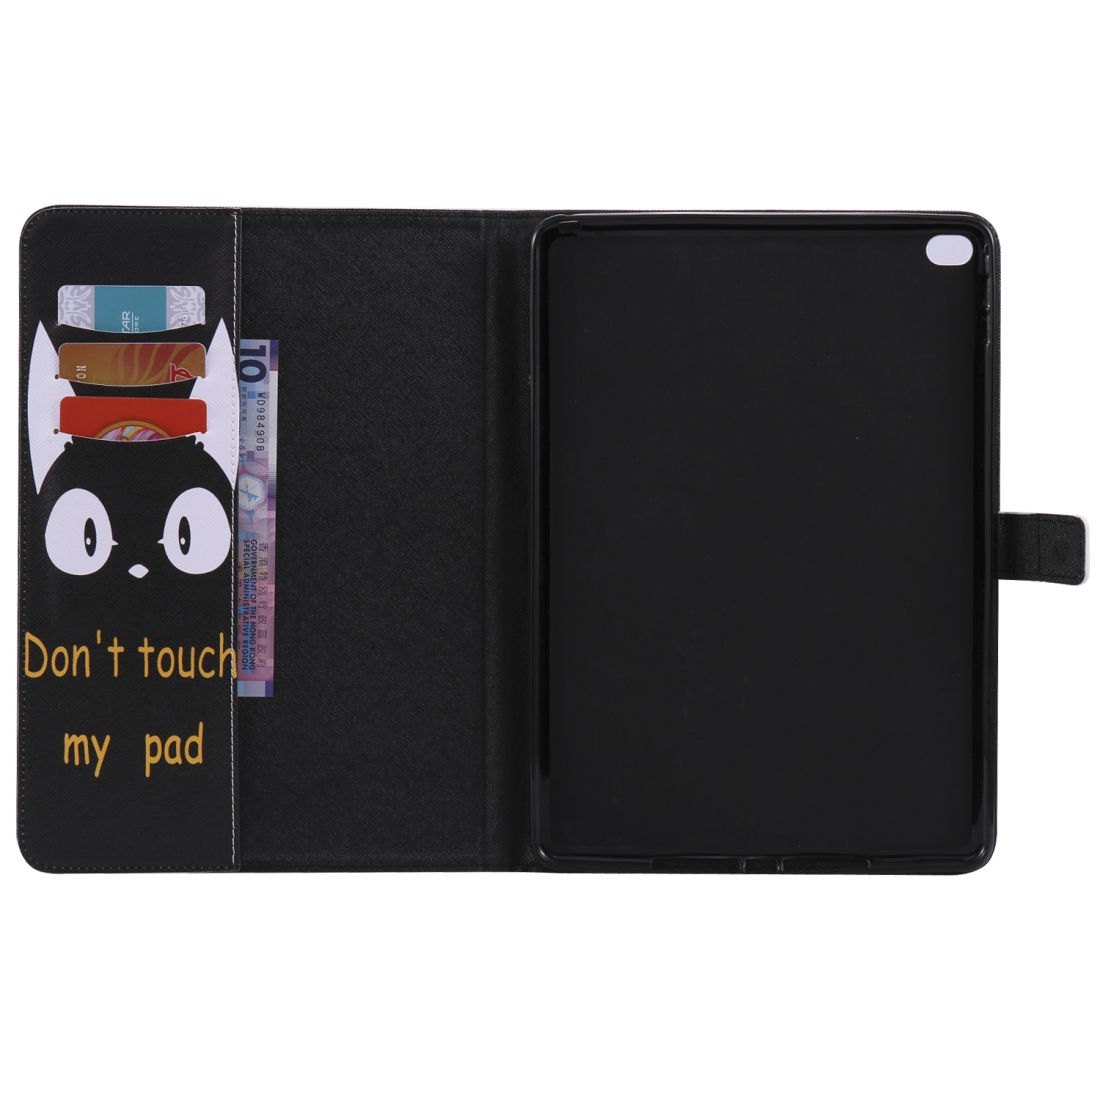 iPad 5th Generation Case Fits iPad 5 & 6, Leather With A Slim Profile & Auto Sleep (Cat Ears)